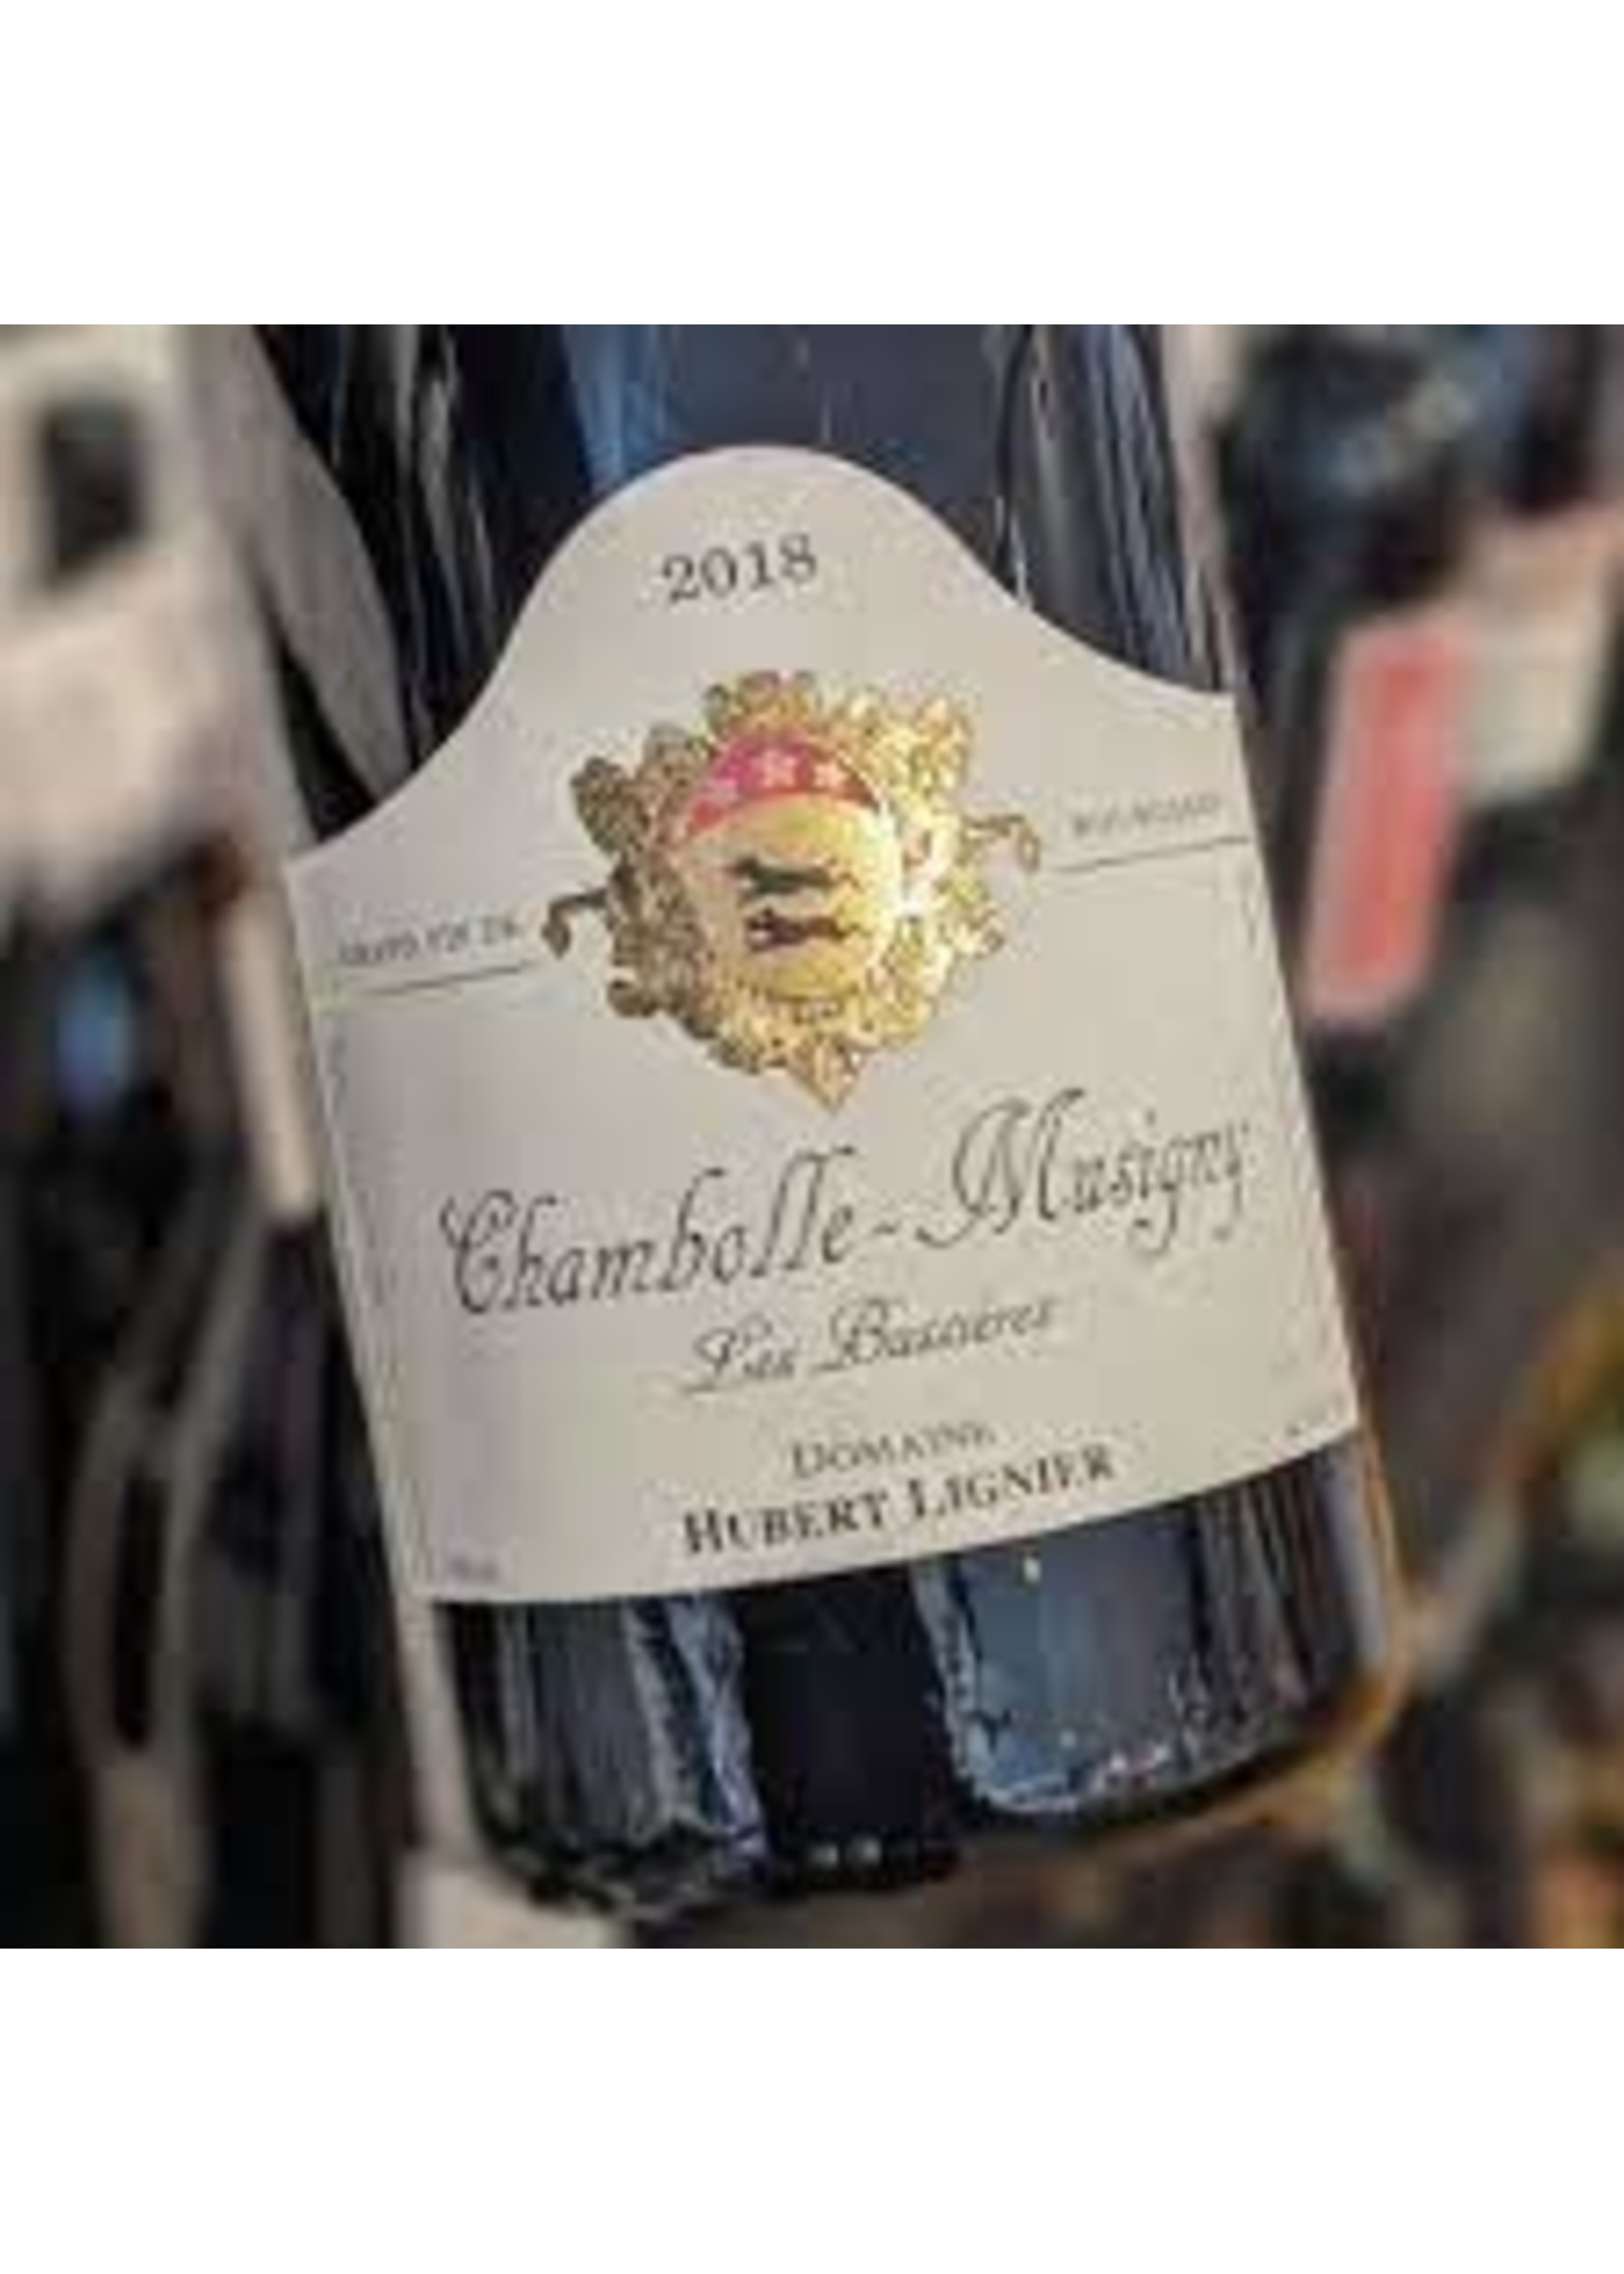 Hubert Lignier 2018 Chambolle-Musigny 'Les Bussieres' 1.5L